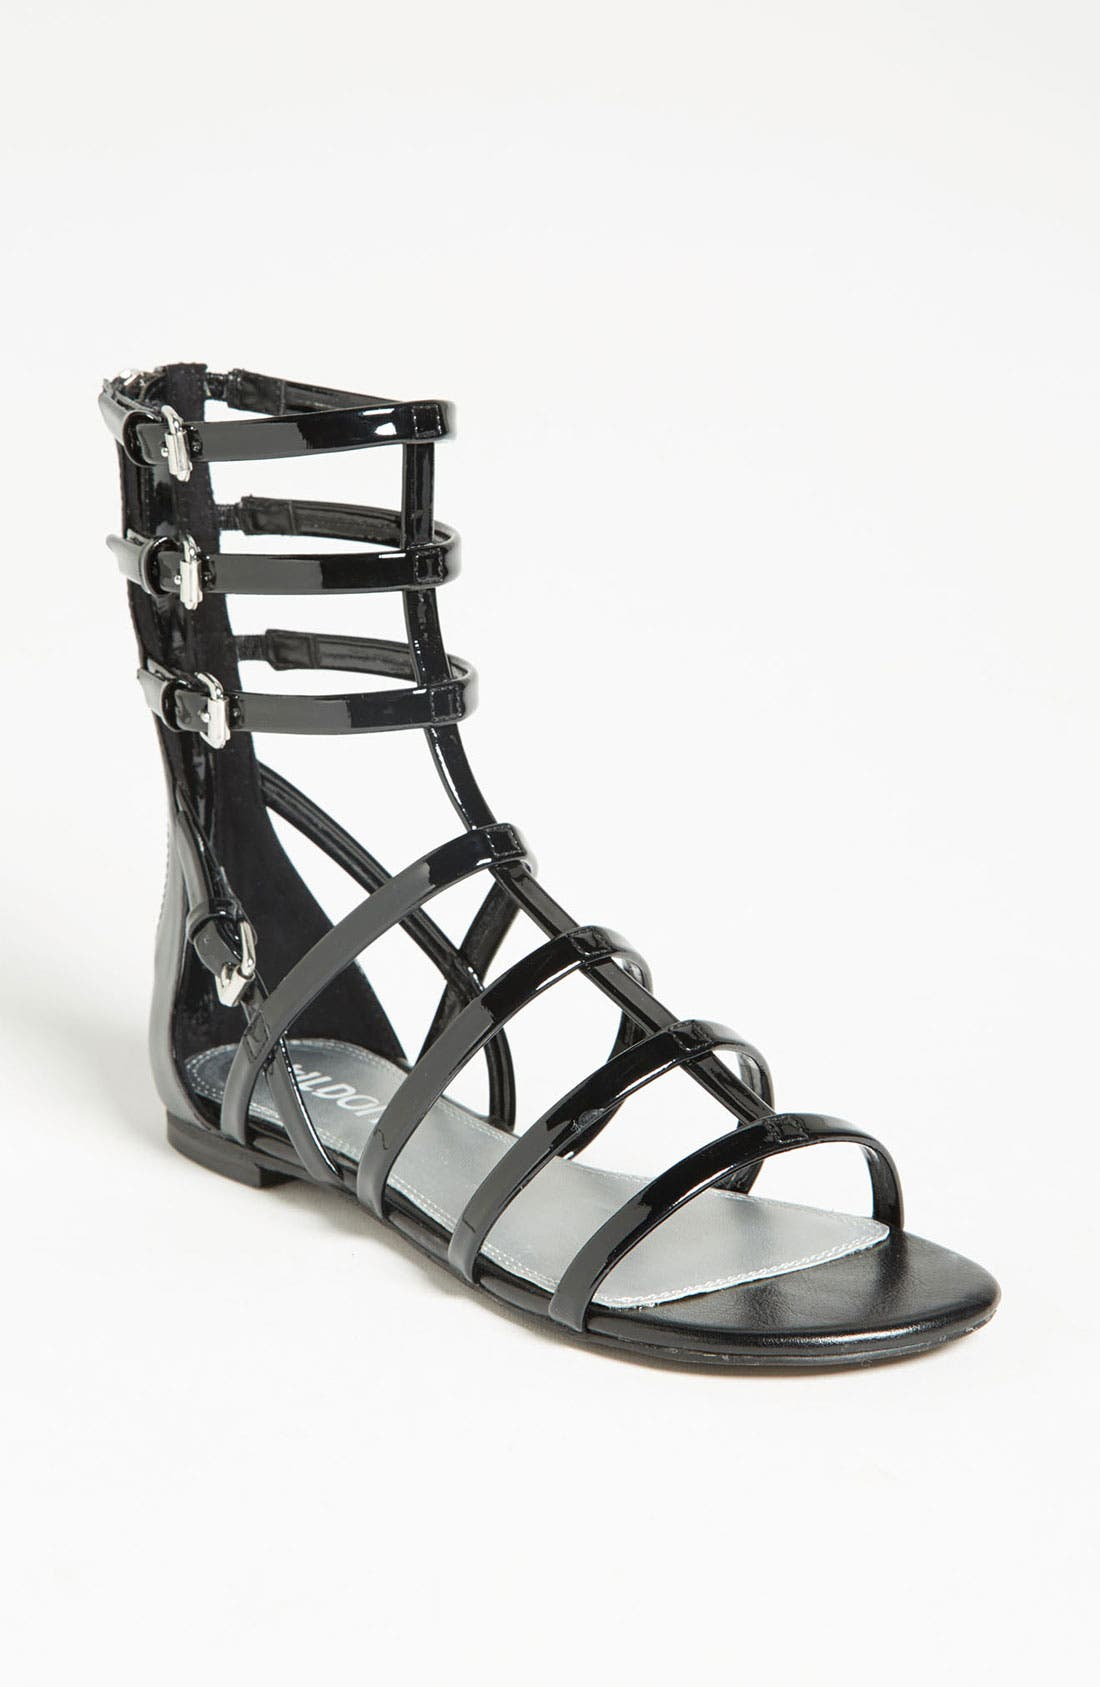 Alternate Image 1 Selected - Tildon 'Sarasota' Sandal